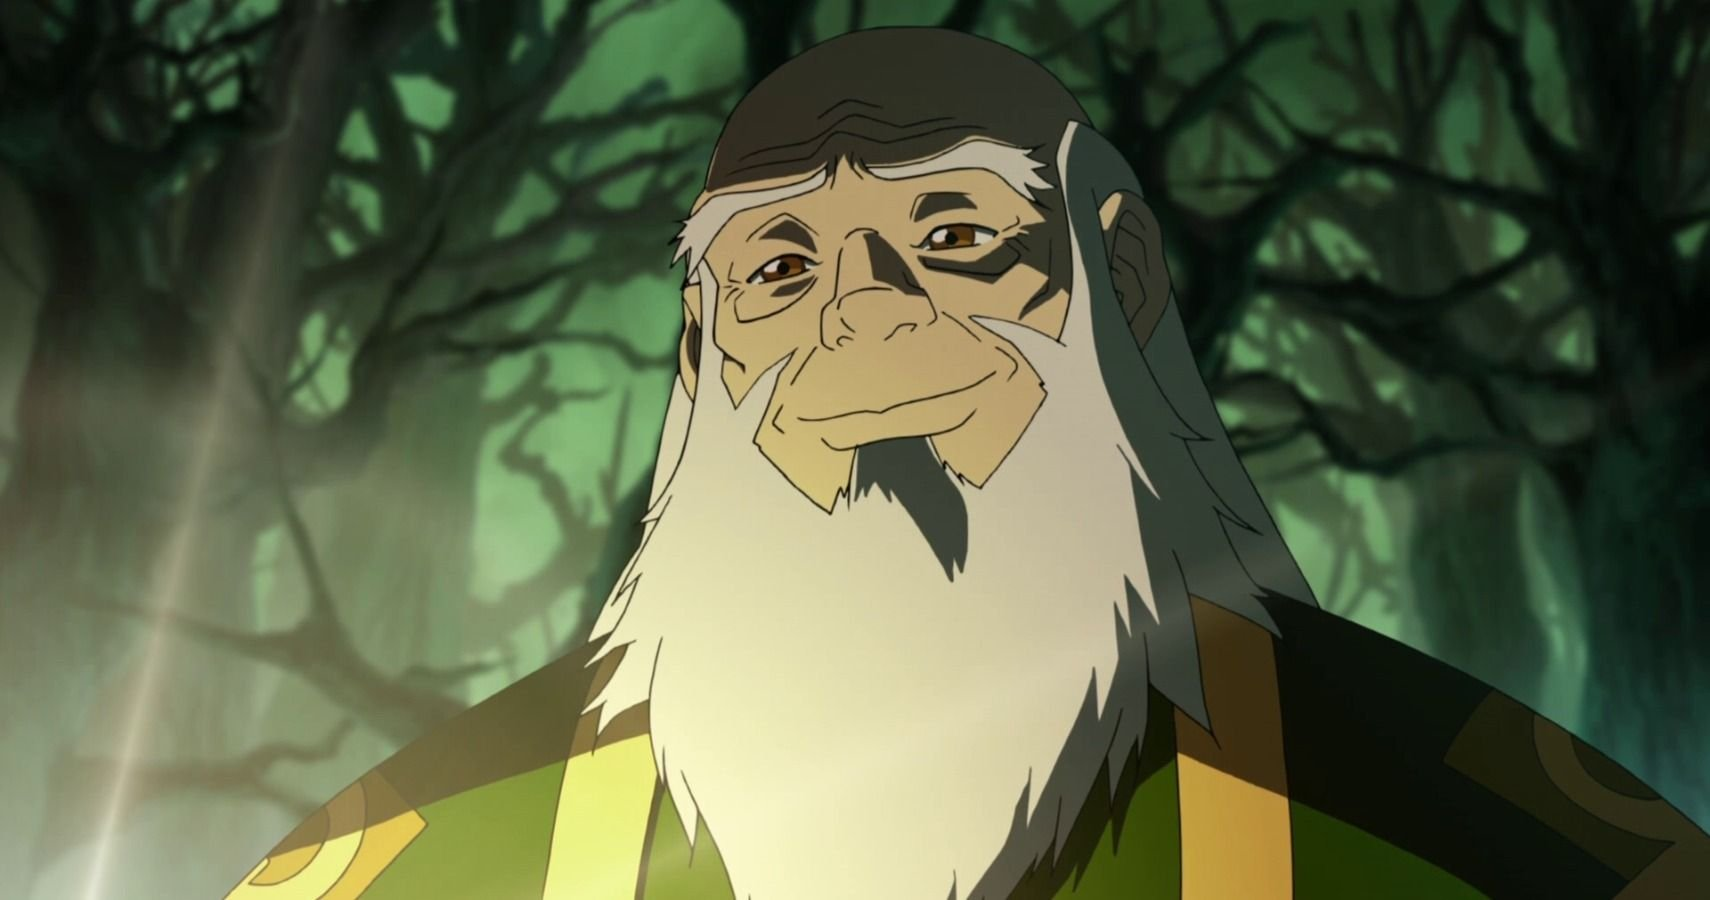 I Can't Wait To Play As Iroh In The Avatar Tabletop RPG